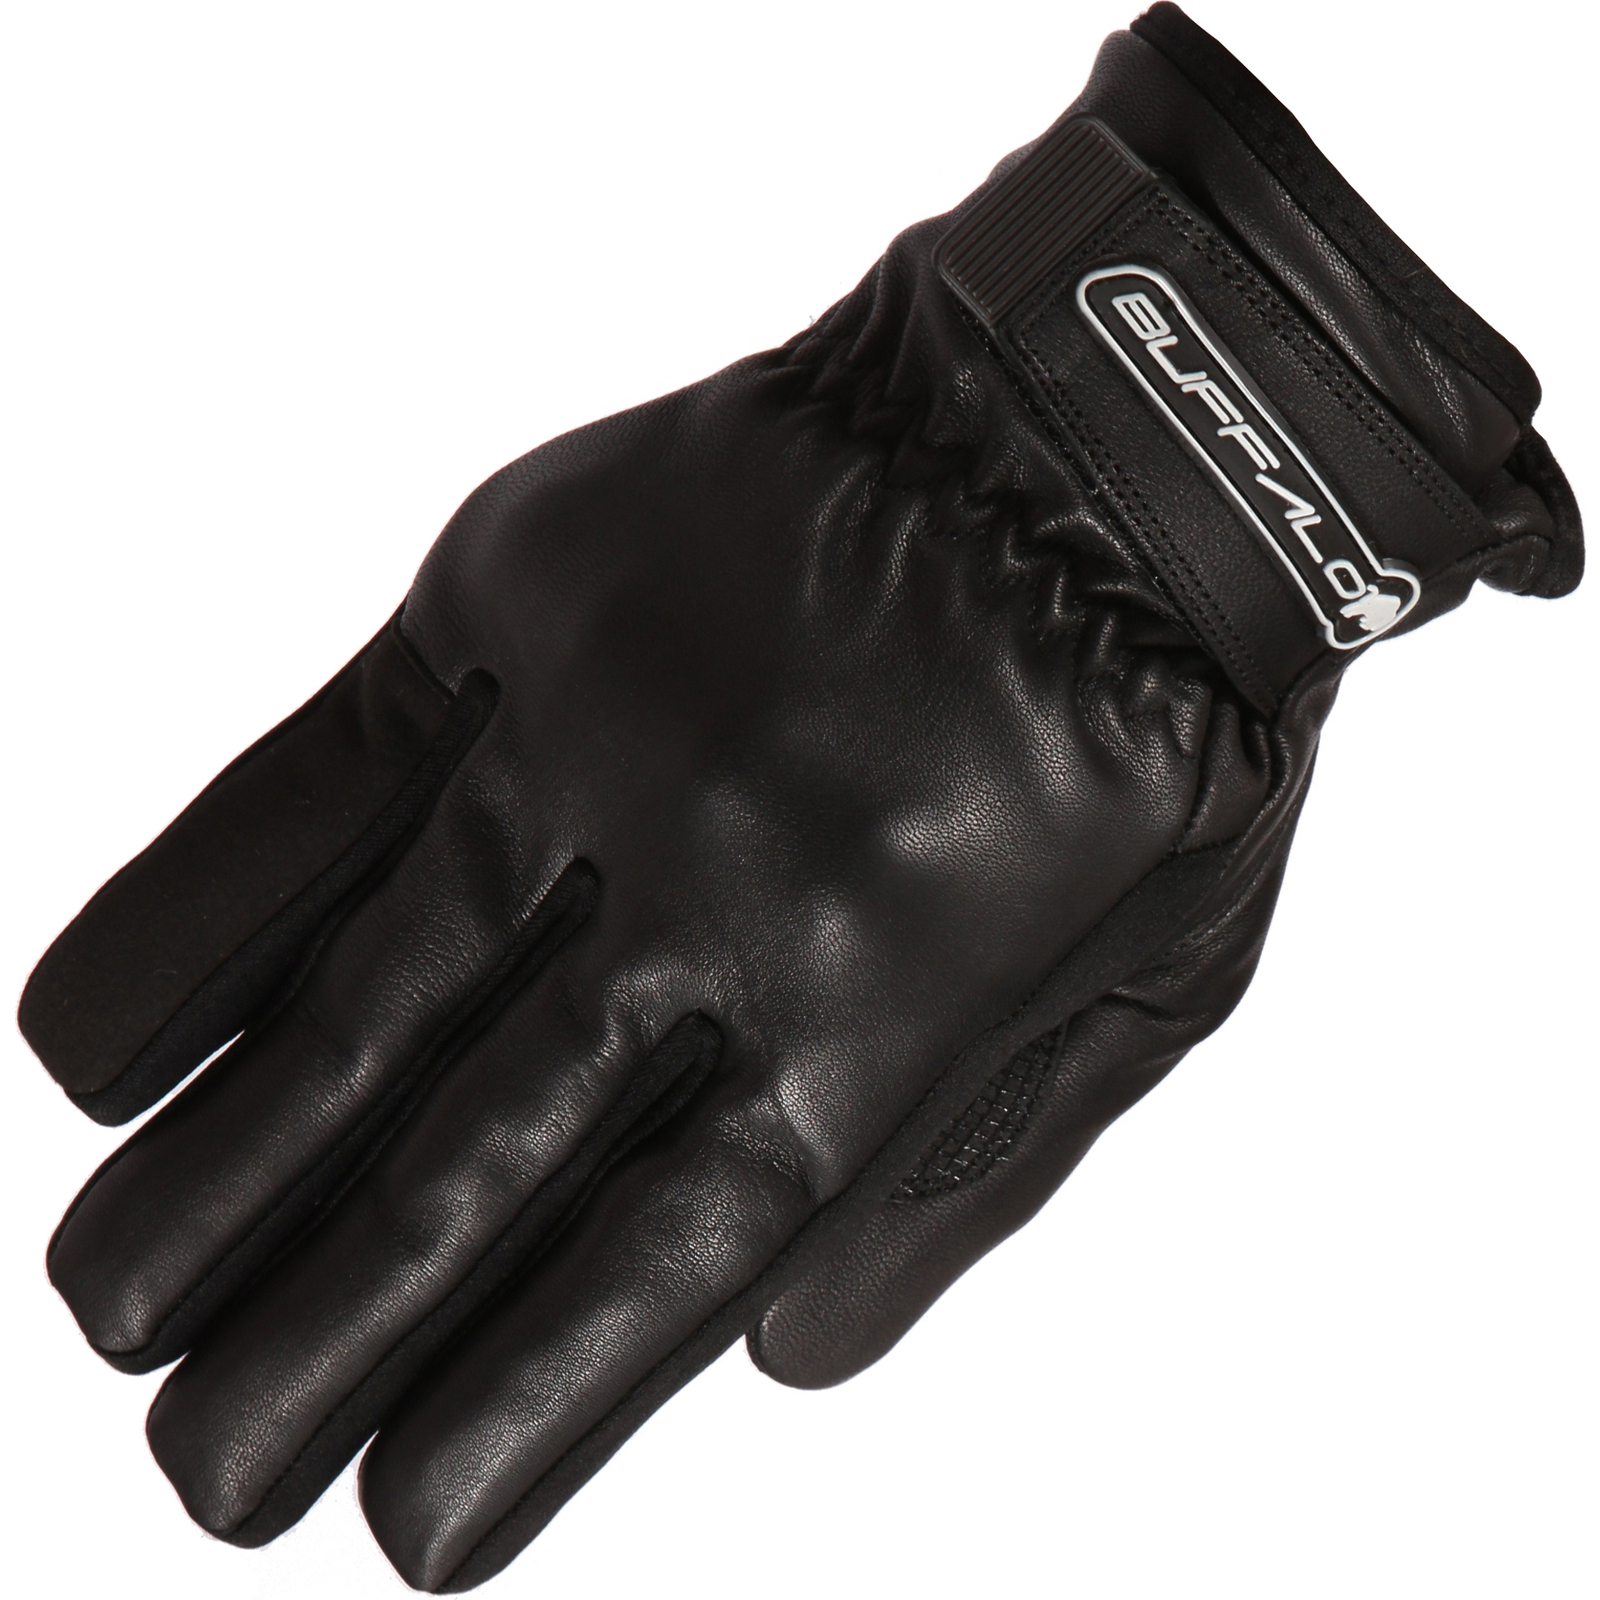 Motorcycle gloves thinsulate - Buffalo Cruise Motorcycle Gloves Leather Waterproof Breathable Thinsulate